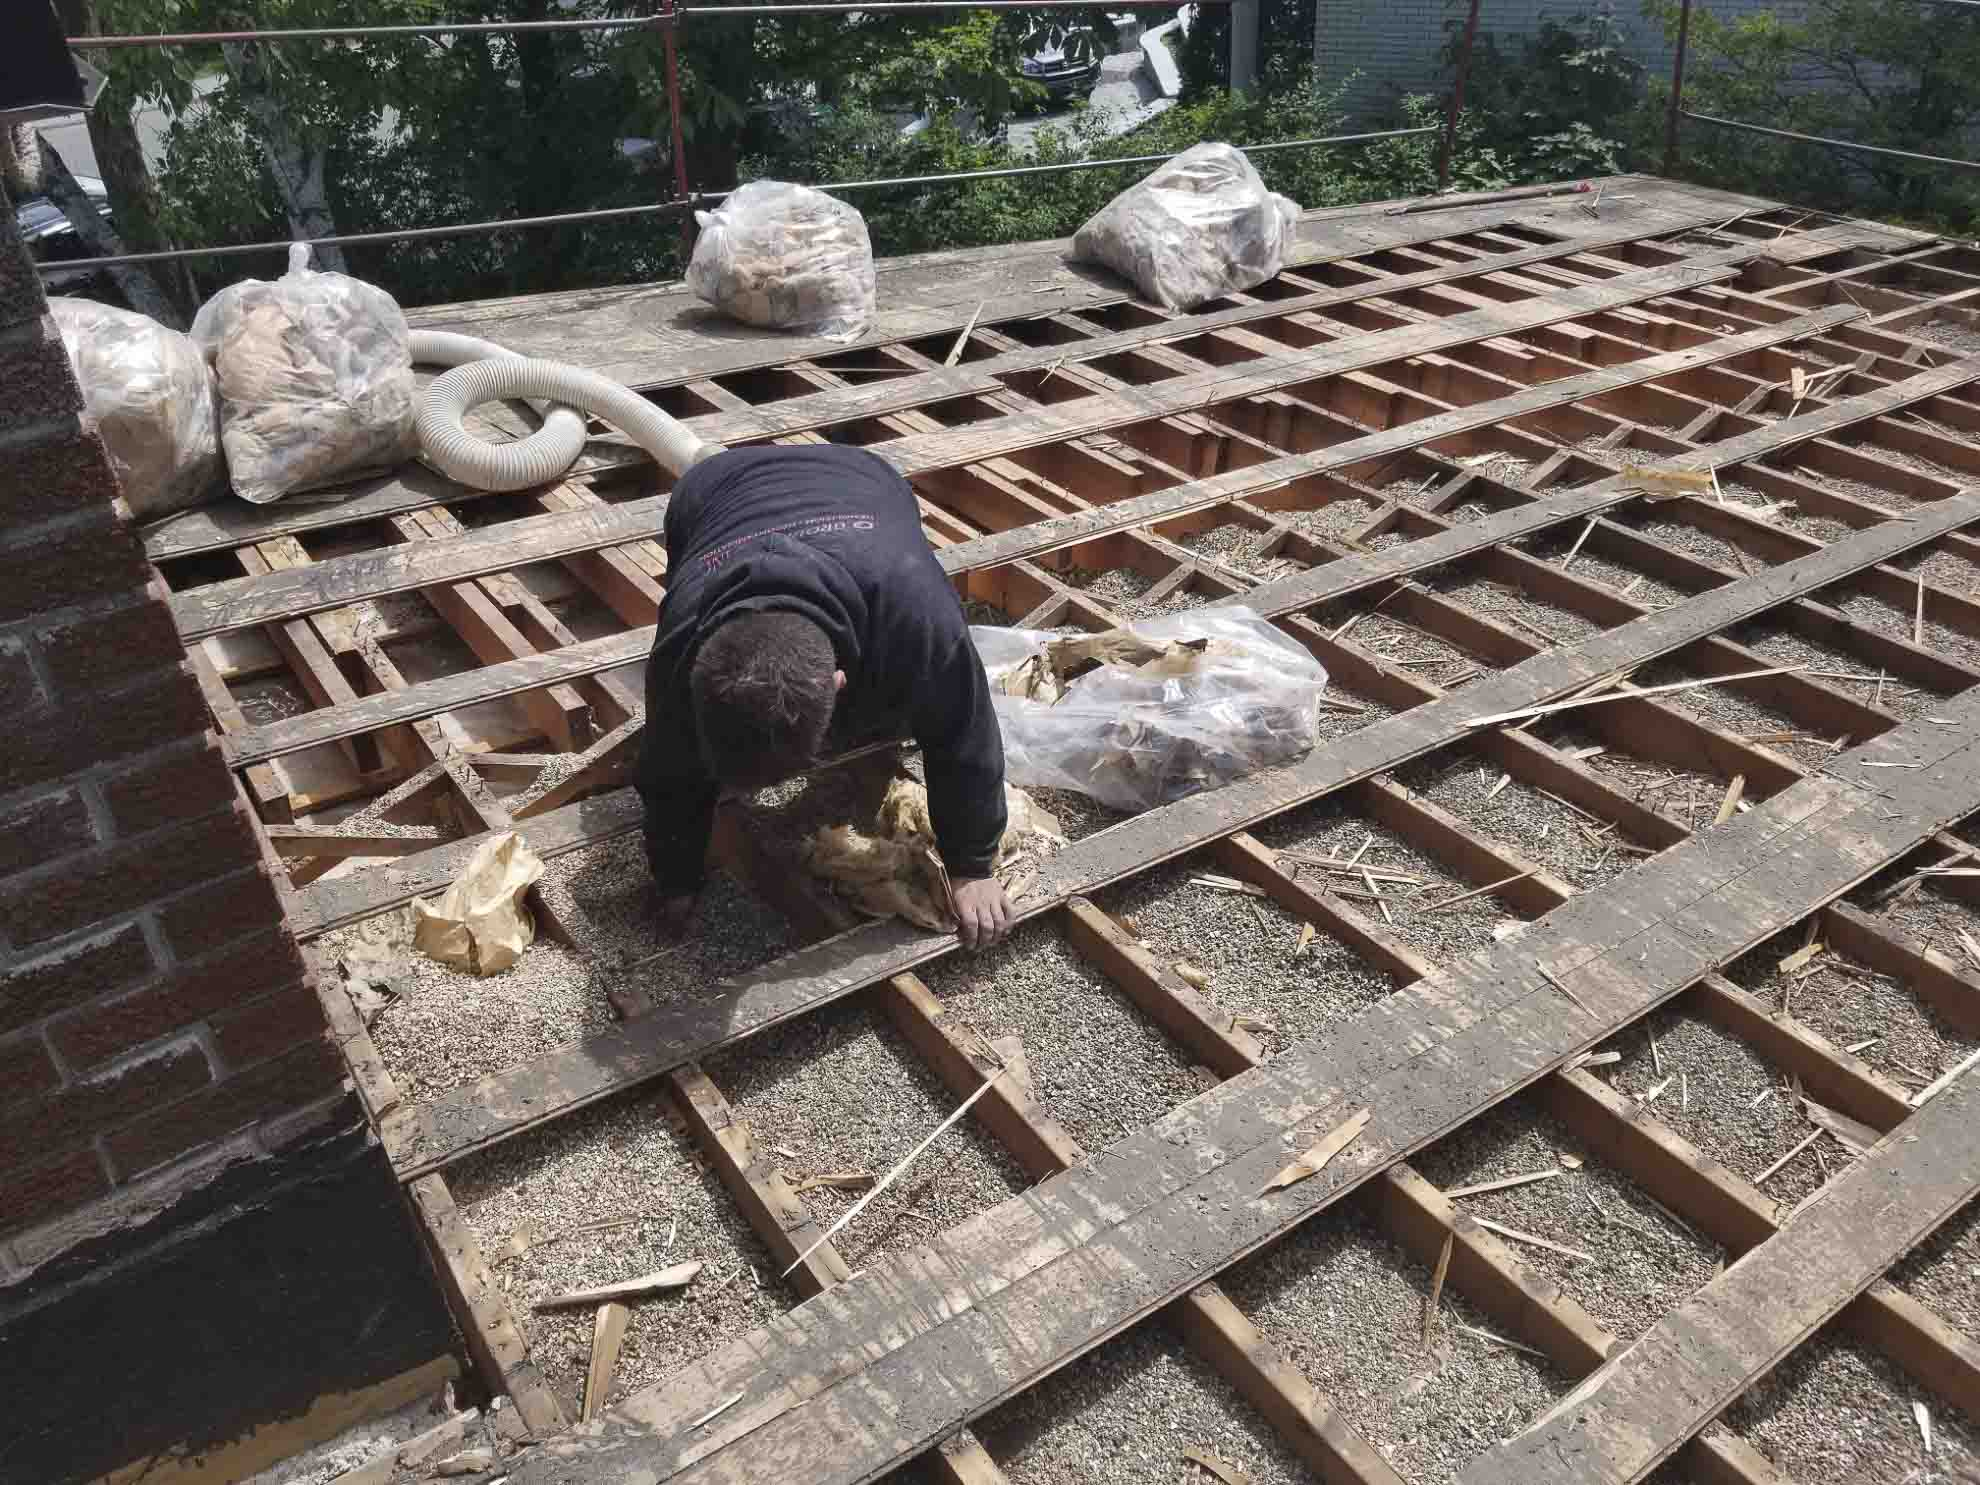 Cleaning and removal of debris on the roof structure